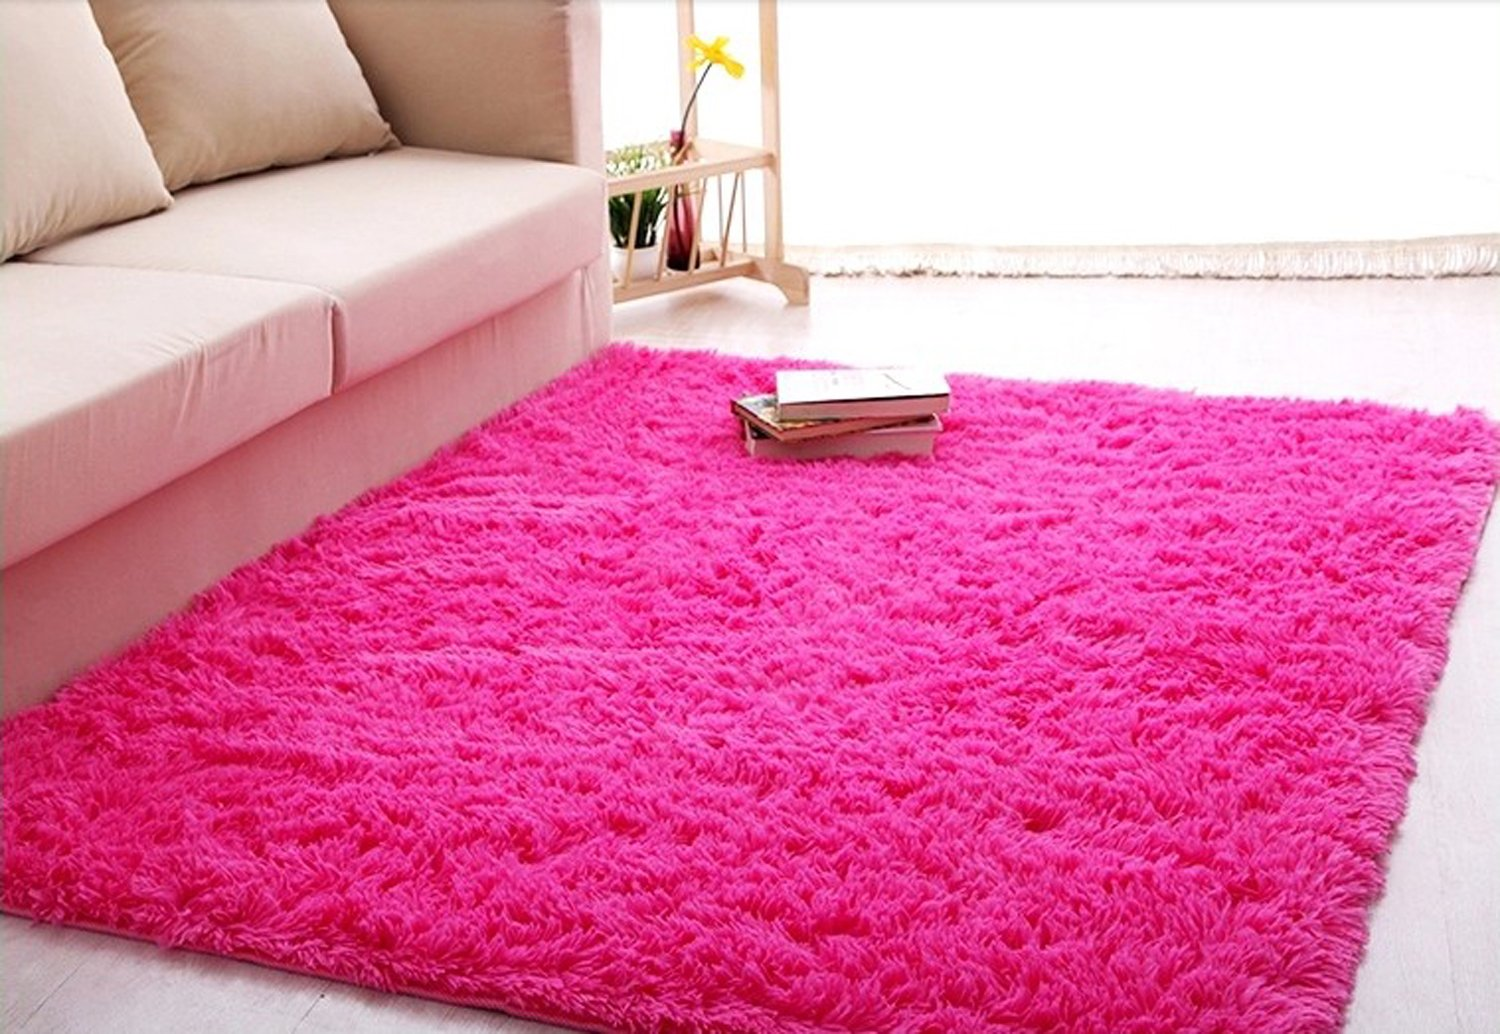 carpet sale drop for rug ideas light on gorgeous pink size shag of awesome full hot cheap rugs large archived area dead